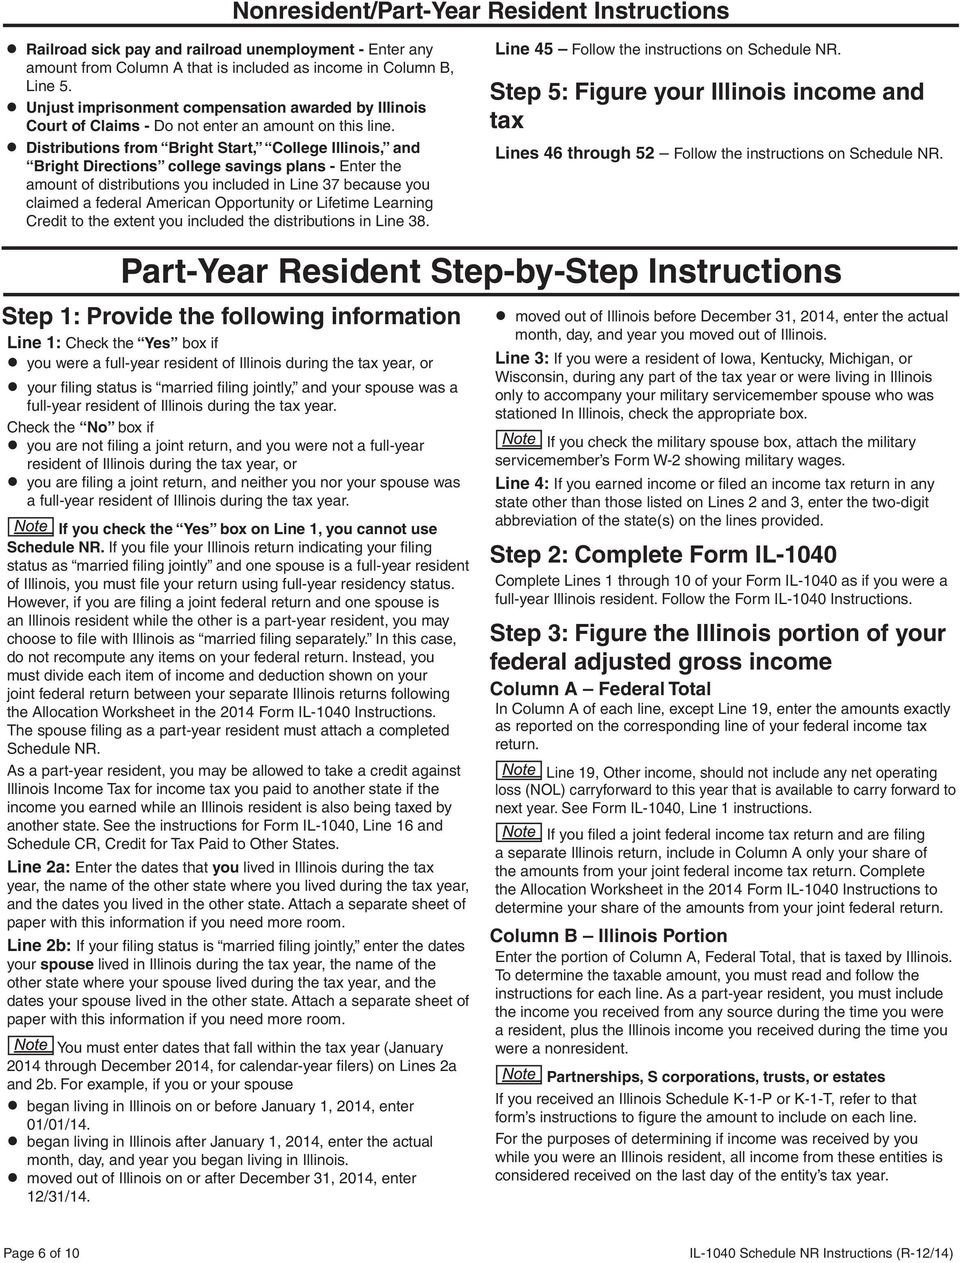 General Information Nonresident Step By Step Instructions Pdf